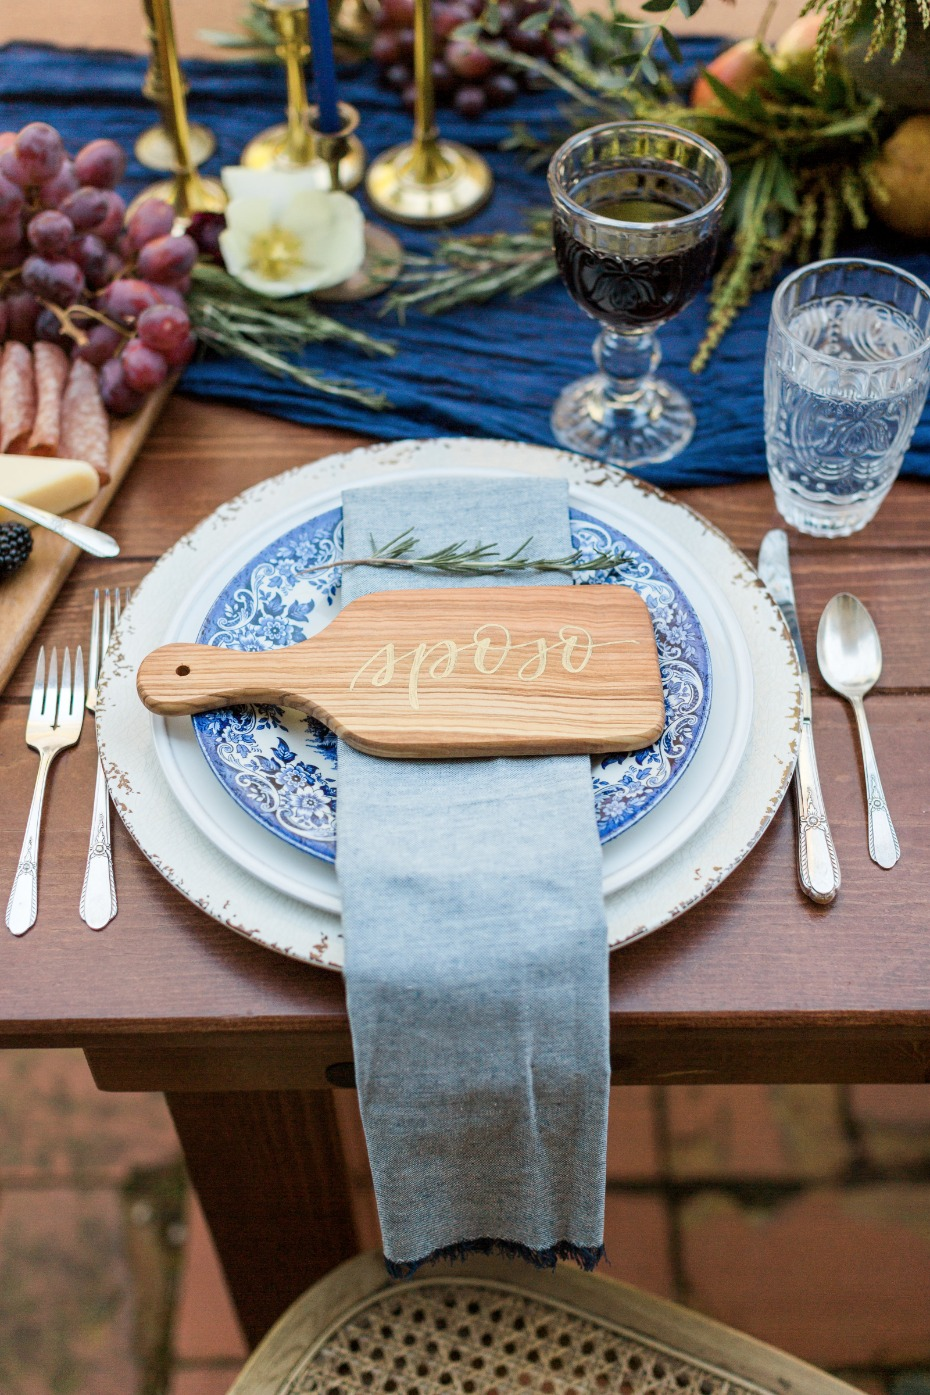 Love this mini cutting board place card